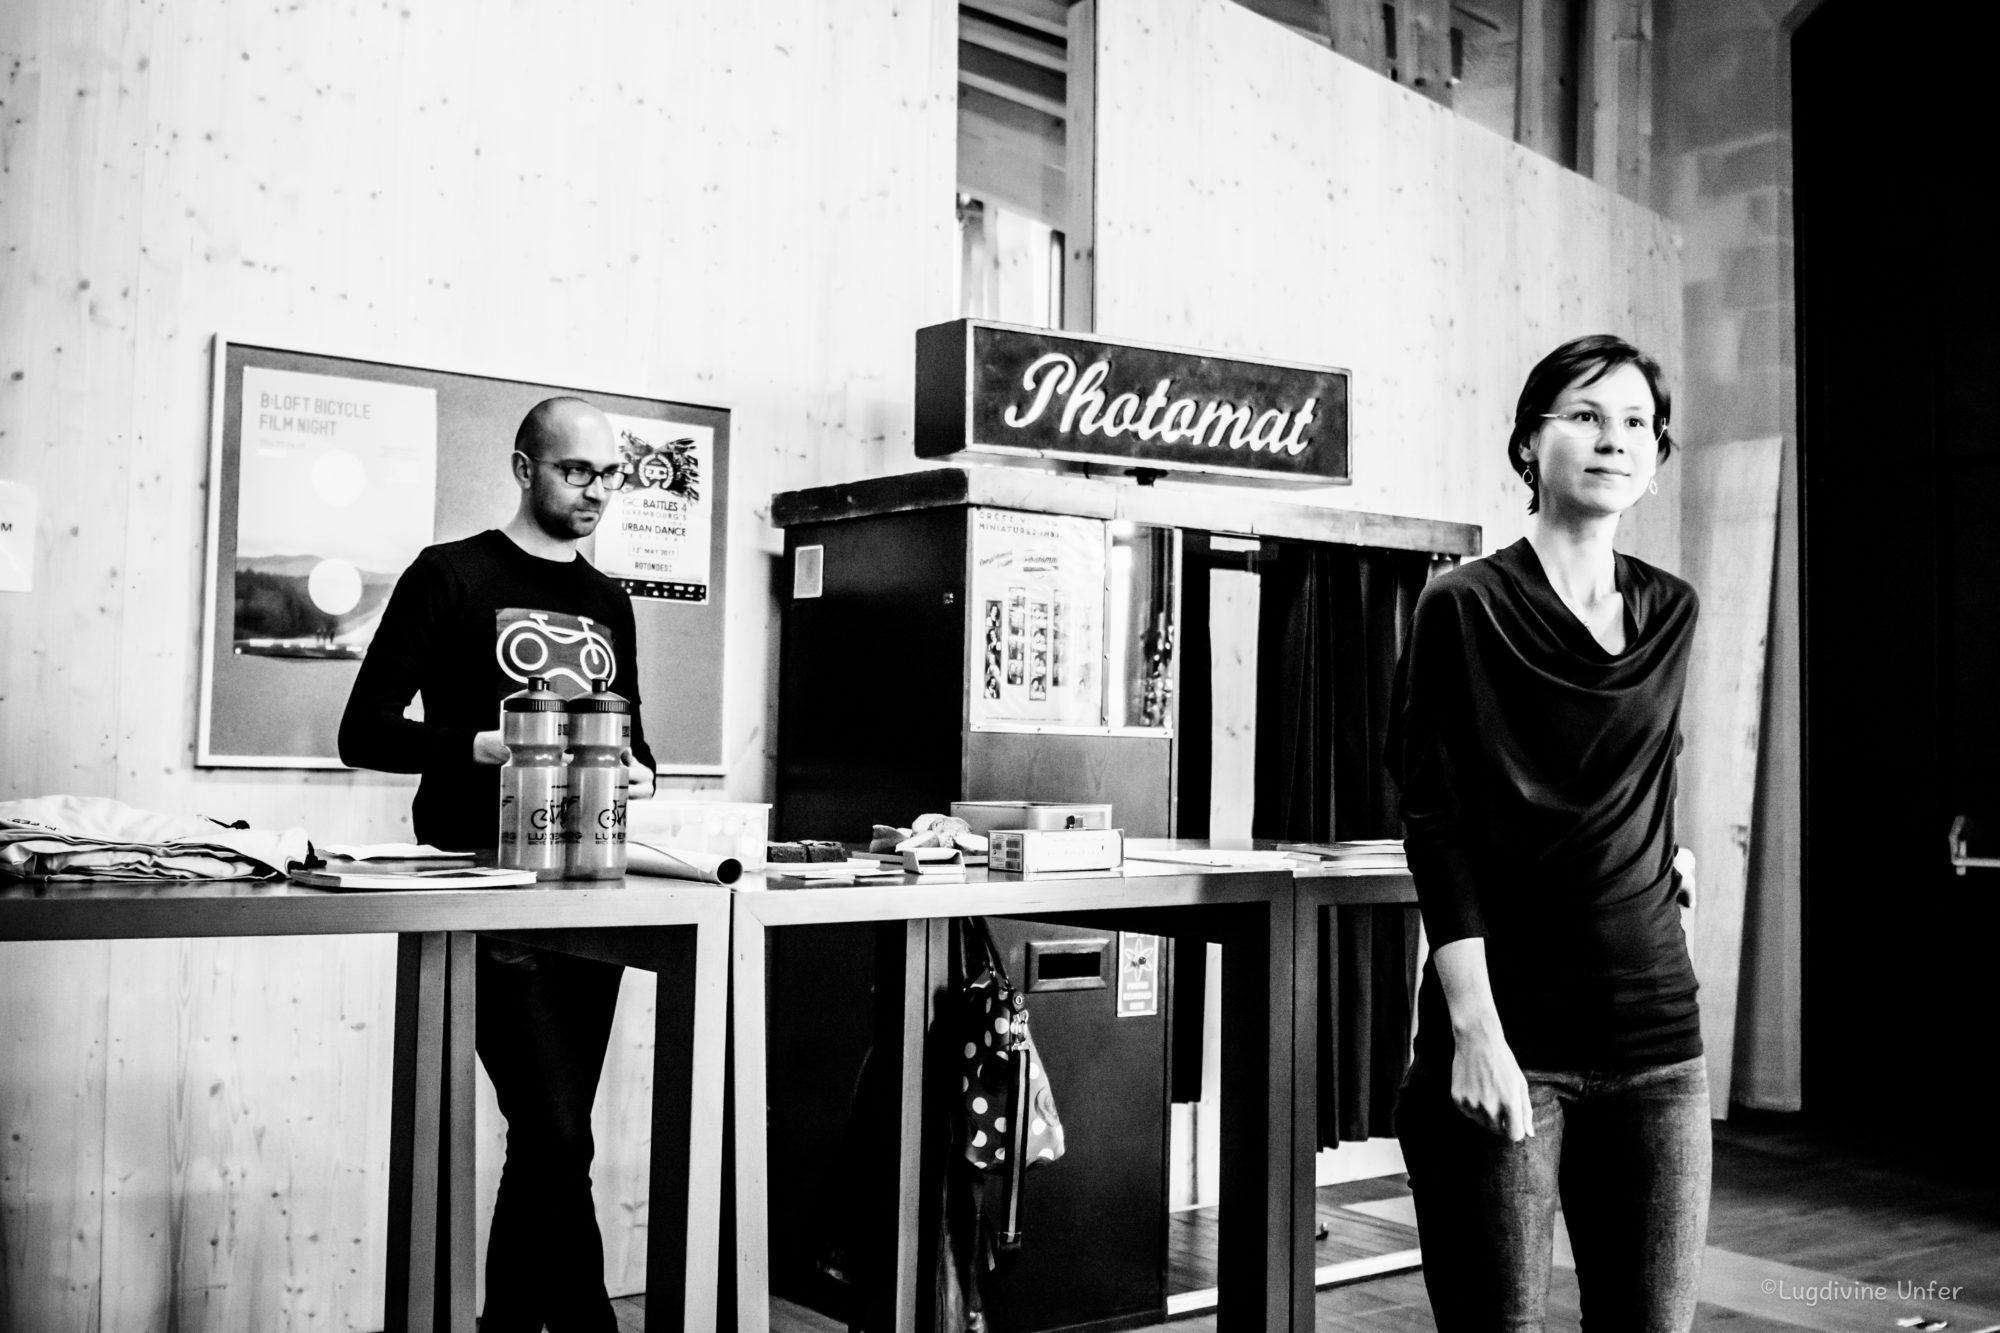 B_W-Bloft-FilmNight-Rotondes-Luxembourg-27042017-by-Lugdivine-Unfer-19